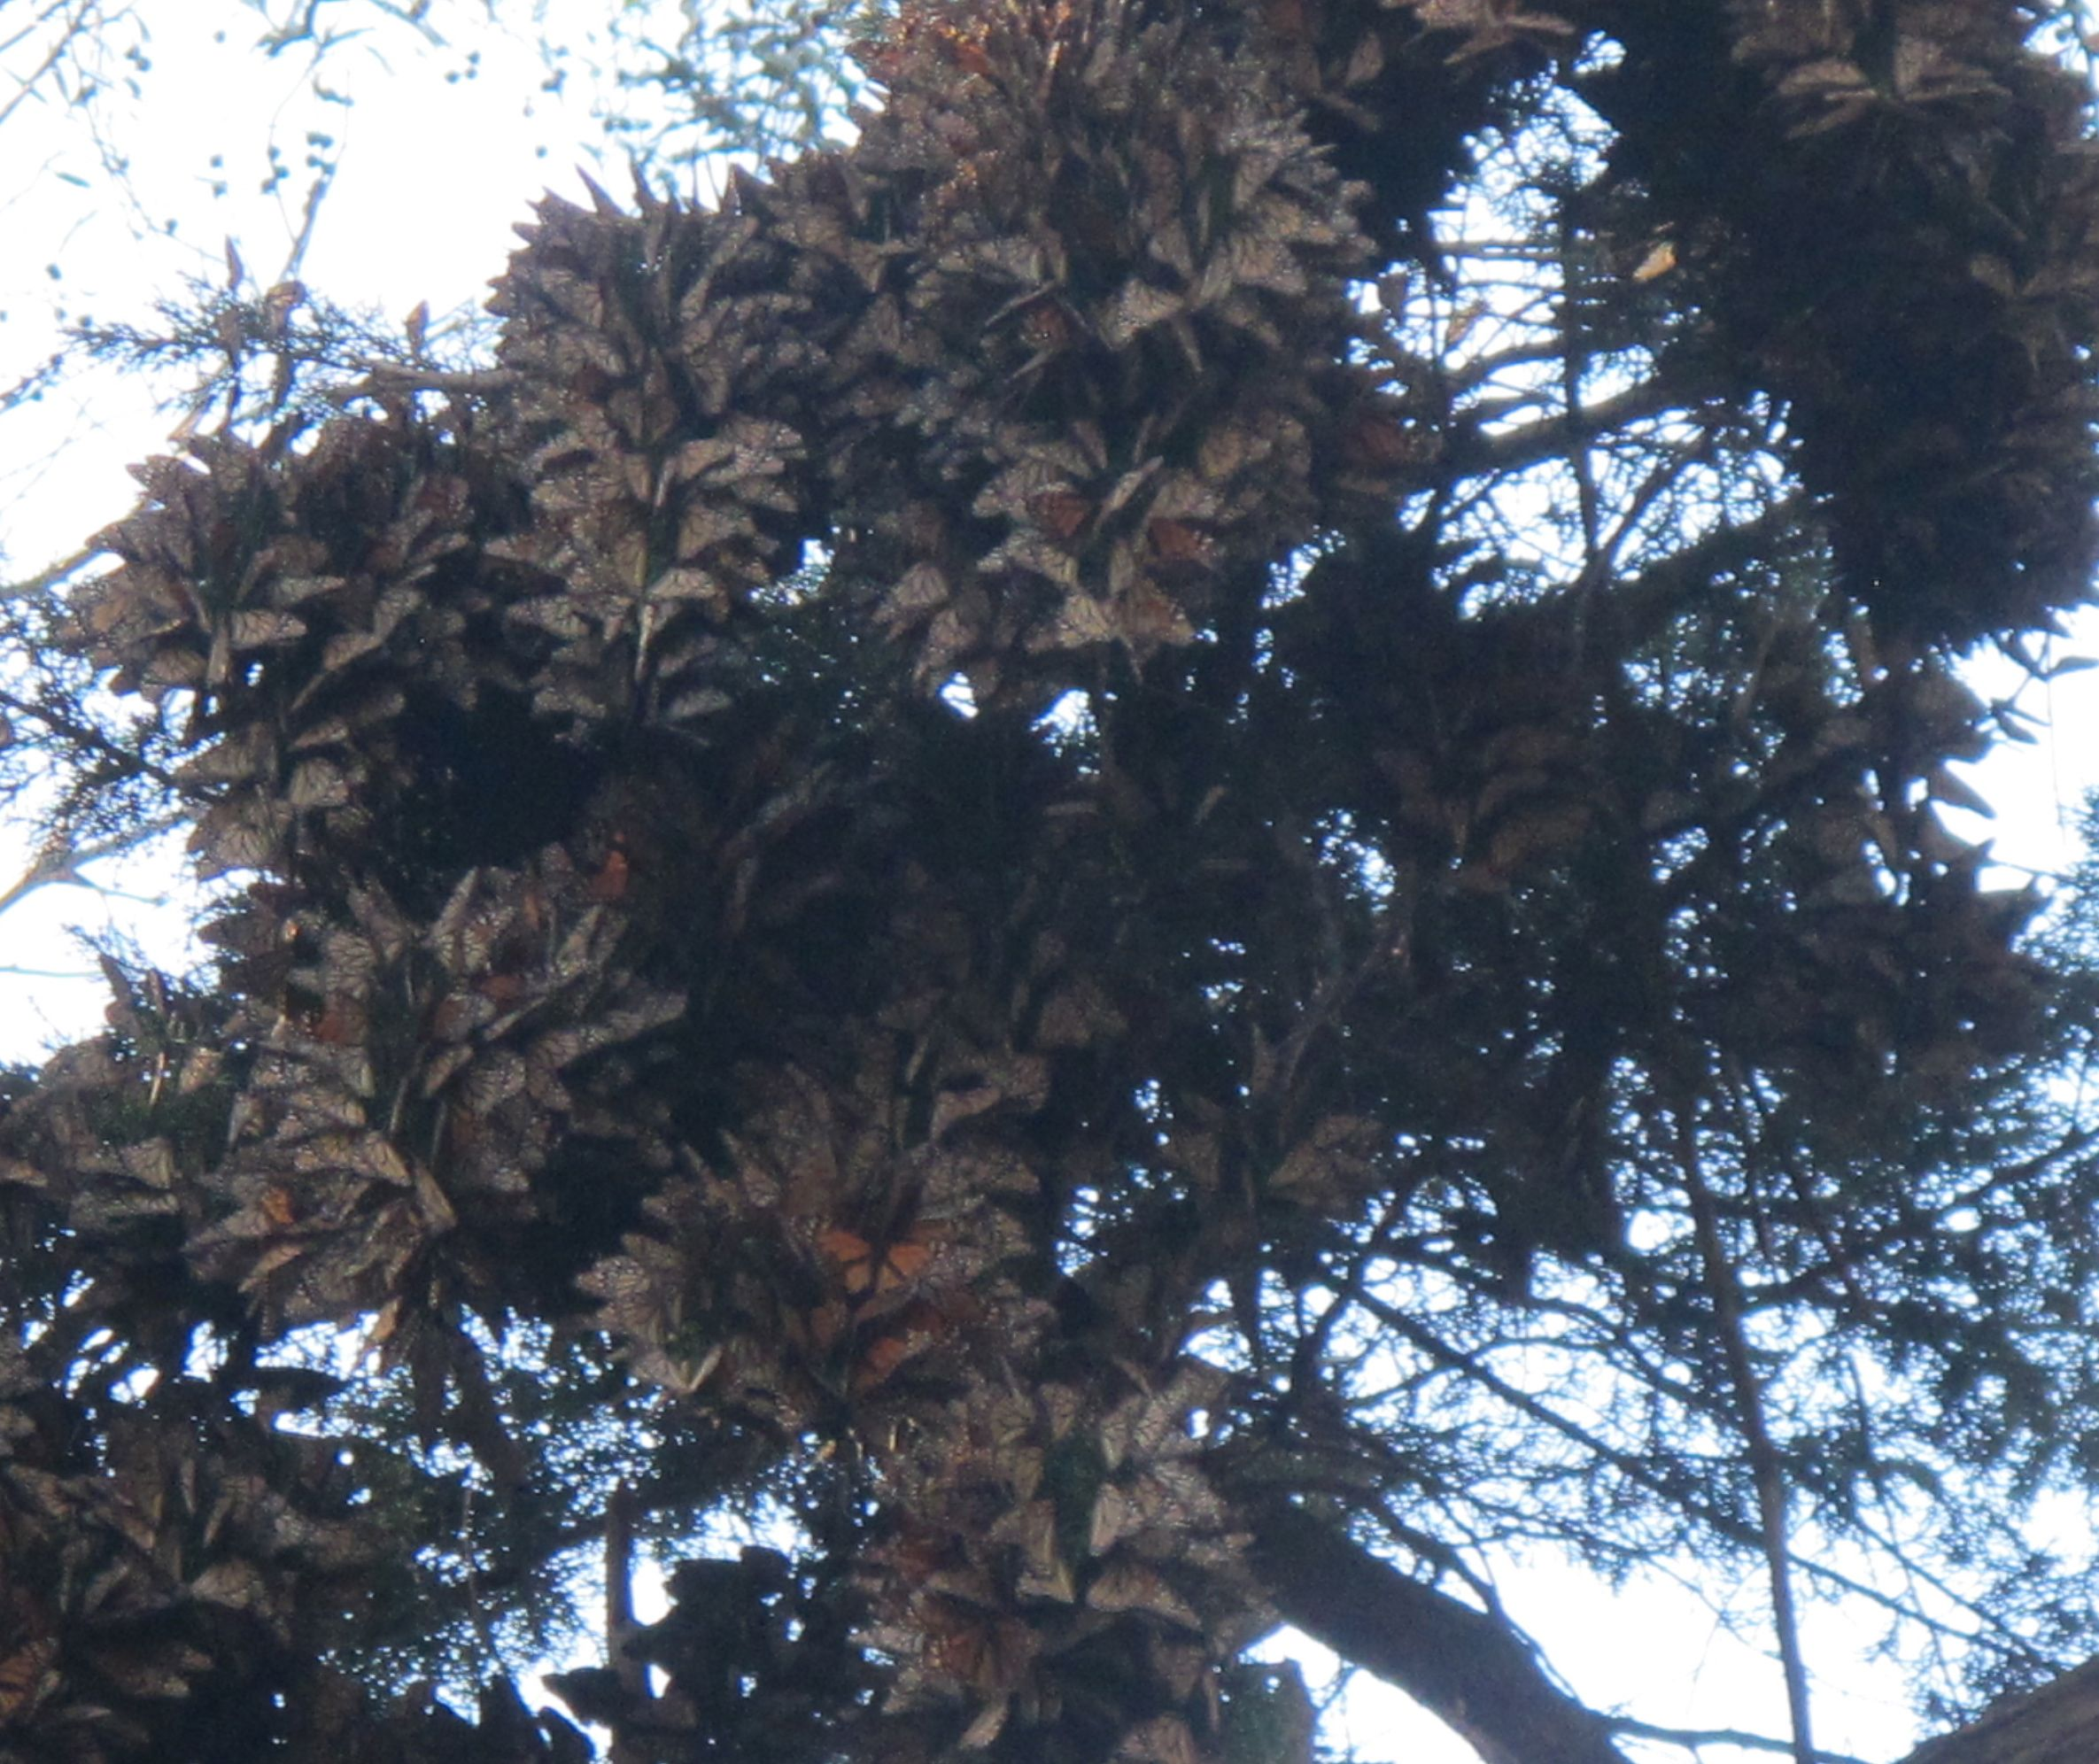 The monarchs packed the undersides of the high branches.